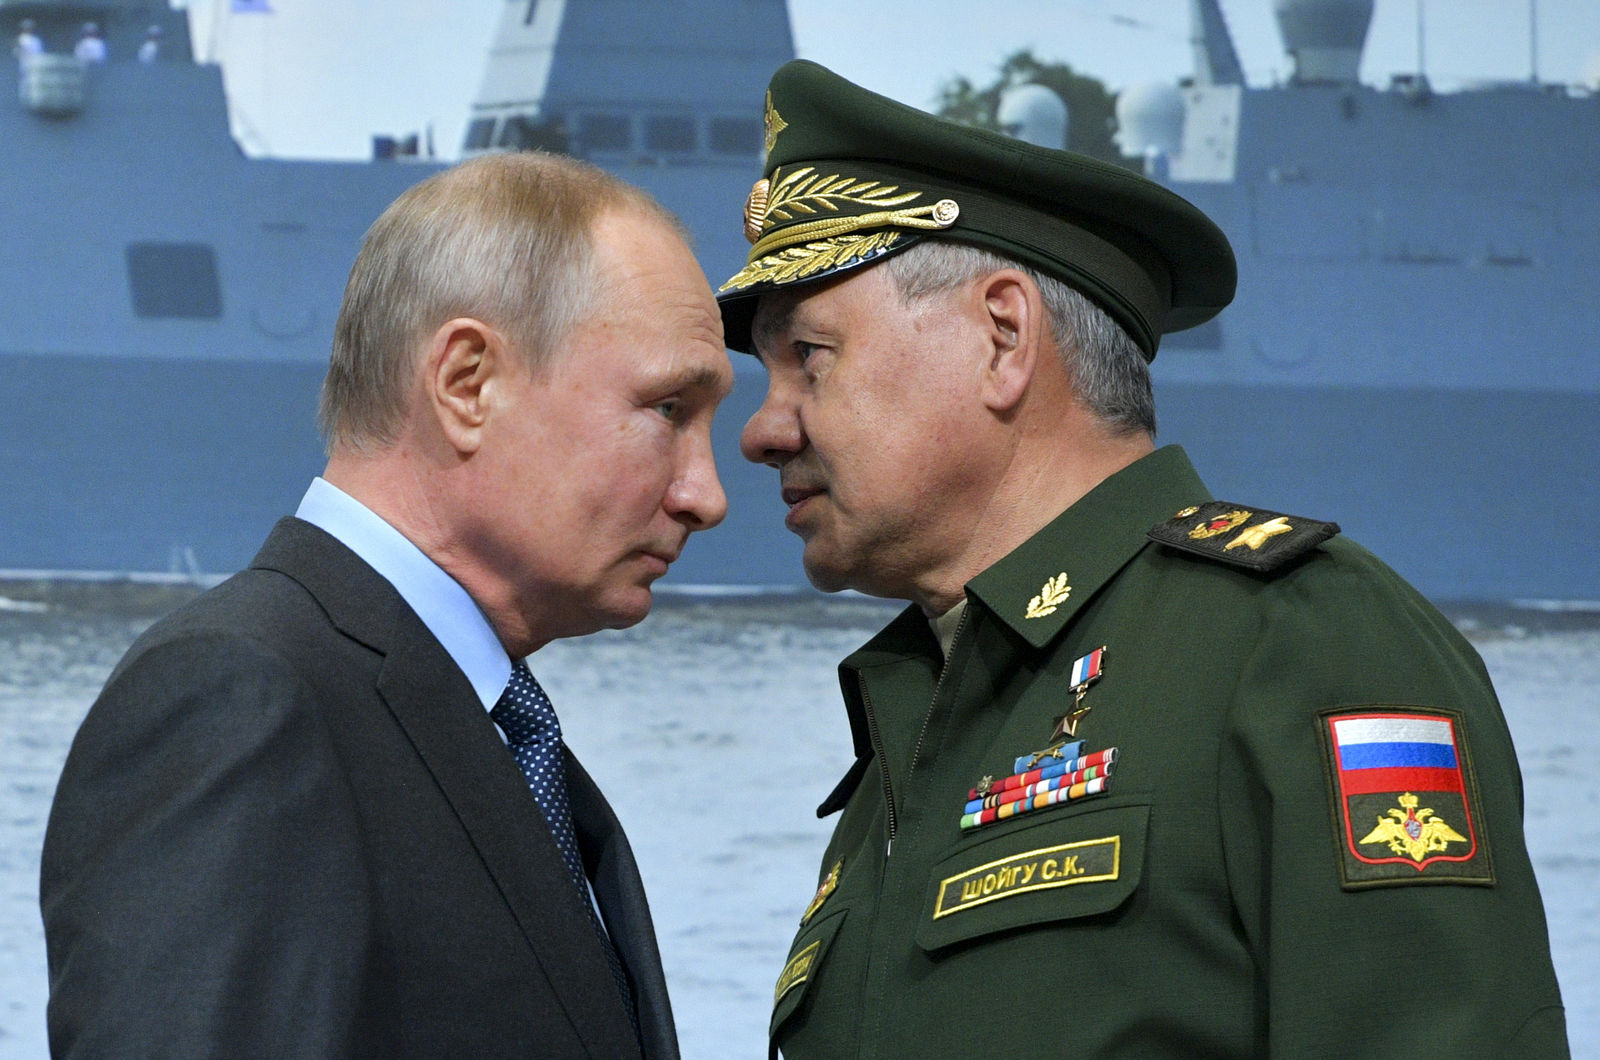 Russian President Vladimir Putin, left, and Russian Defense Minister Sergei Shoigu during a visit a shipyard in St. Petersburg, Russia, Tuesday, April 23, 2019. Putin said the government will pursue an ambitious navy modernization effort. (Alexei Druzhinin, Sputnik, Kremlin Pool Photo via AP)